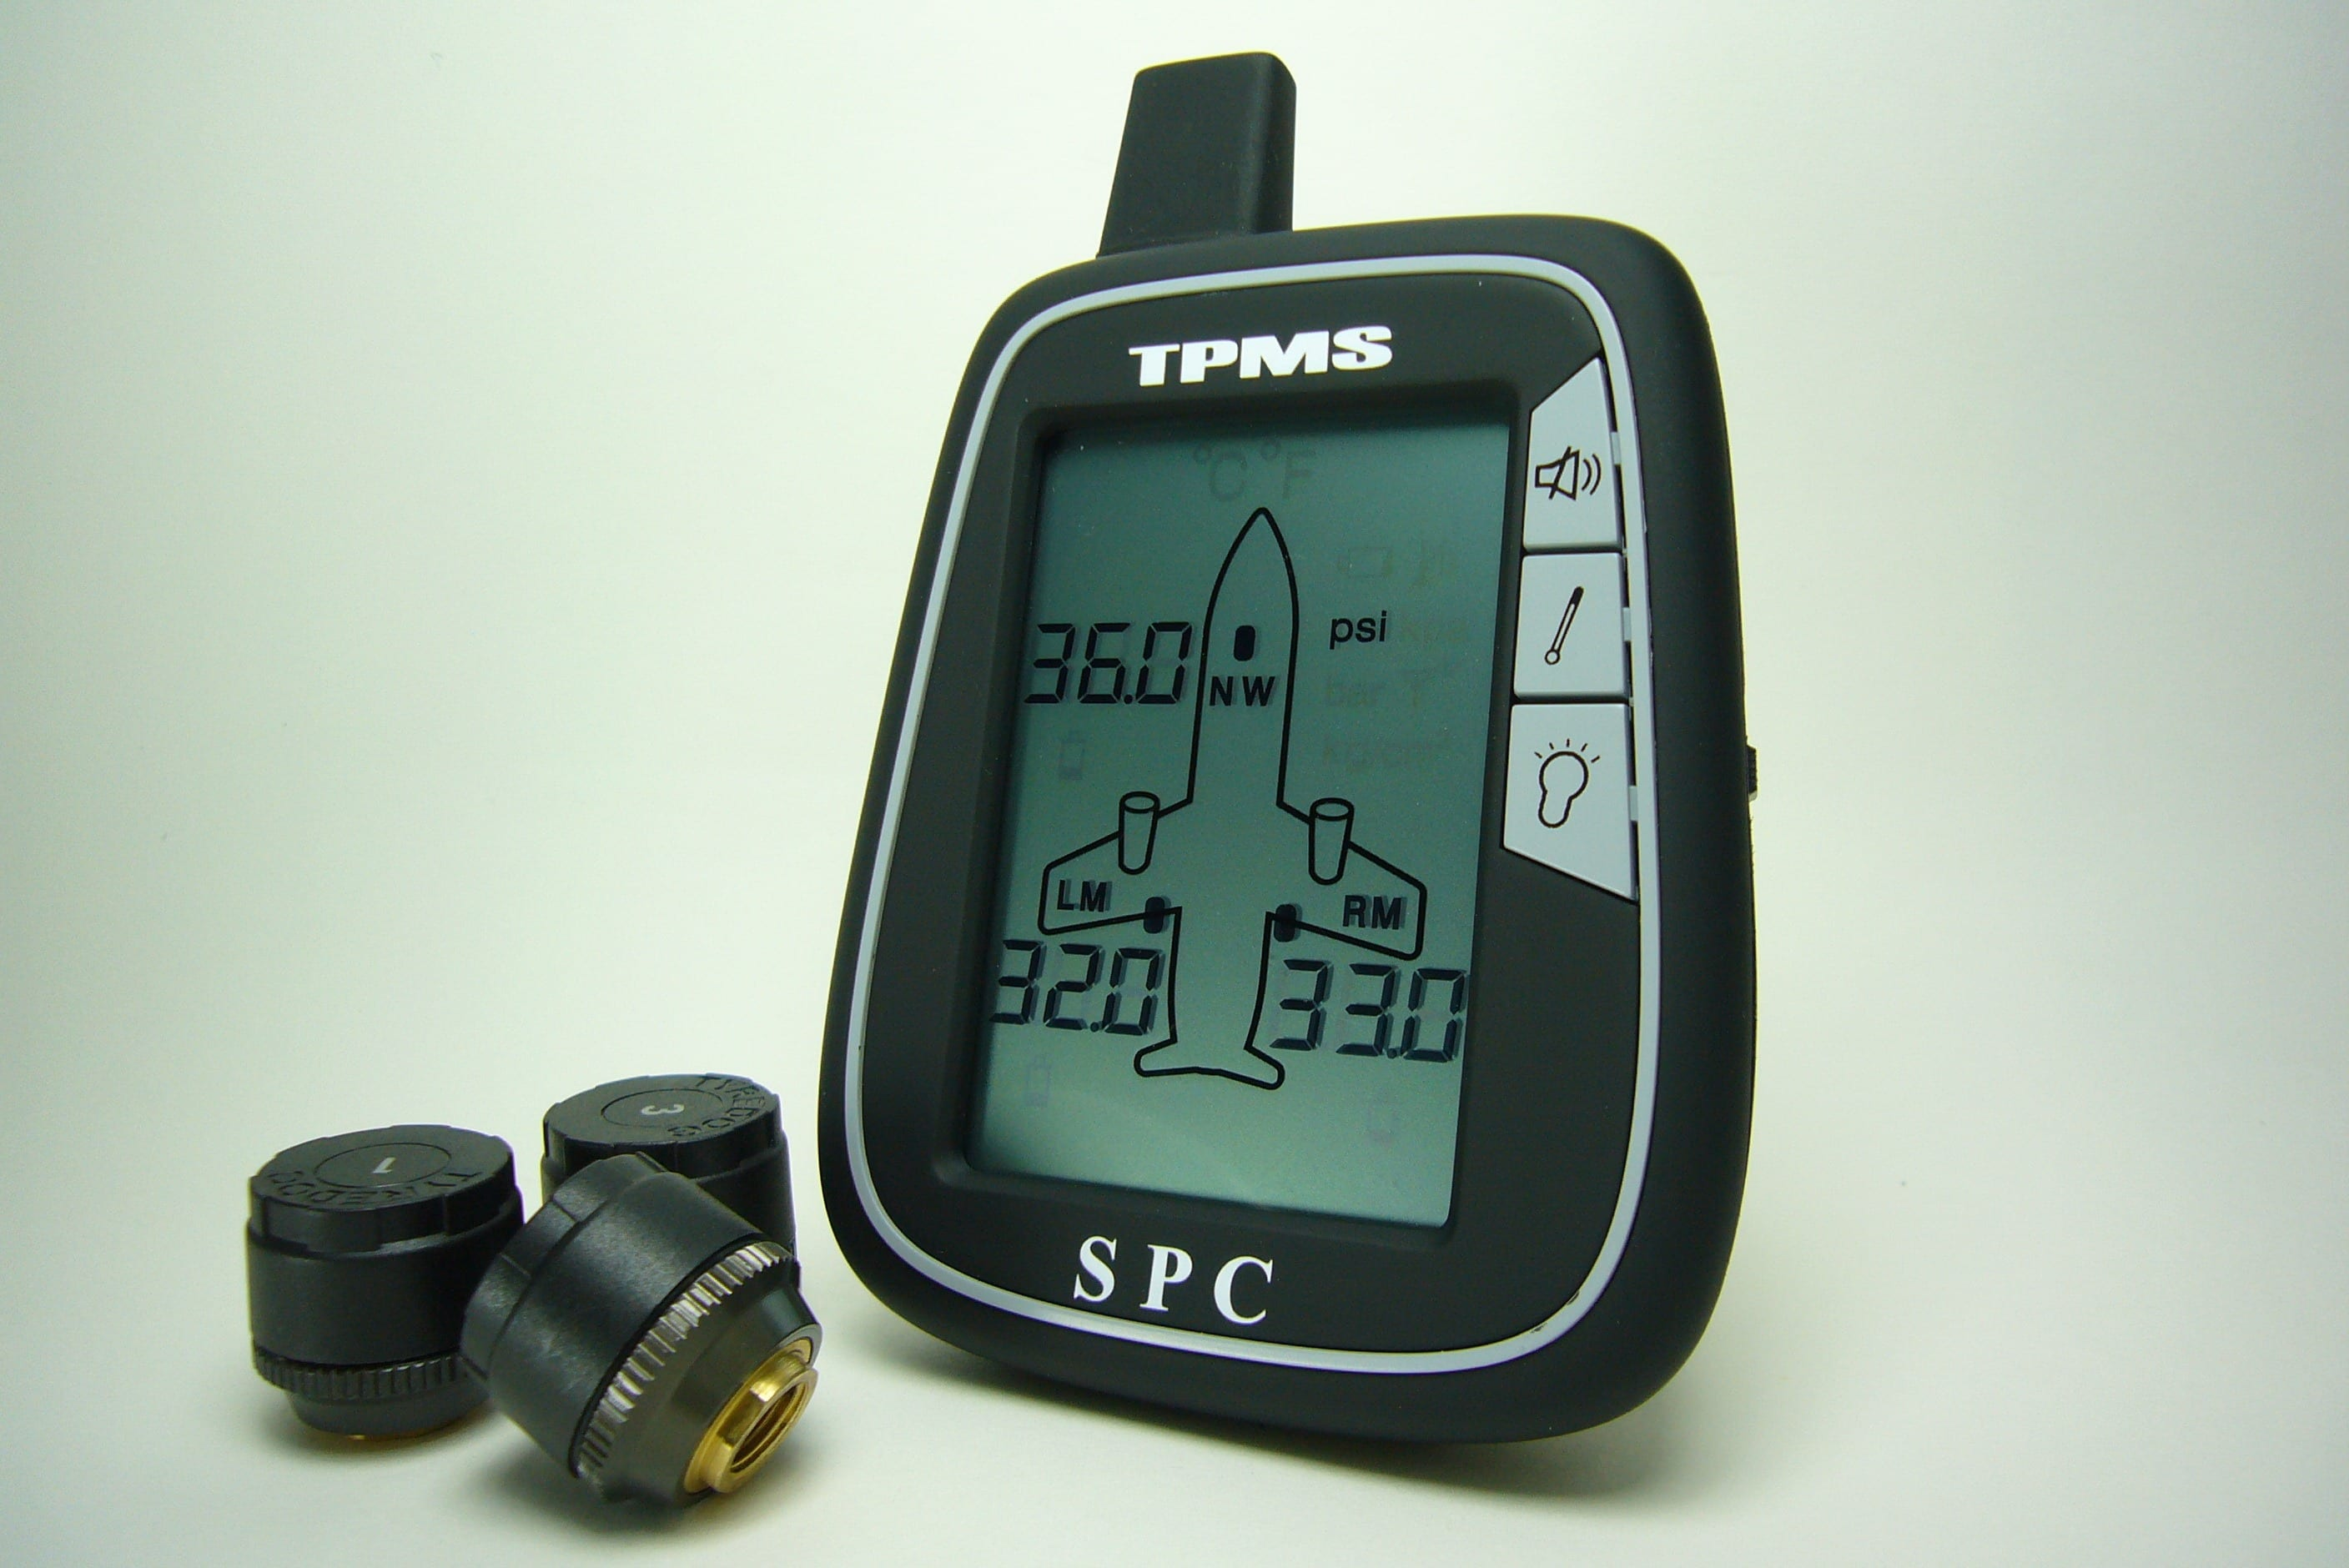 Aircraft Spruce carries tire pressure monitor systems